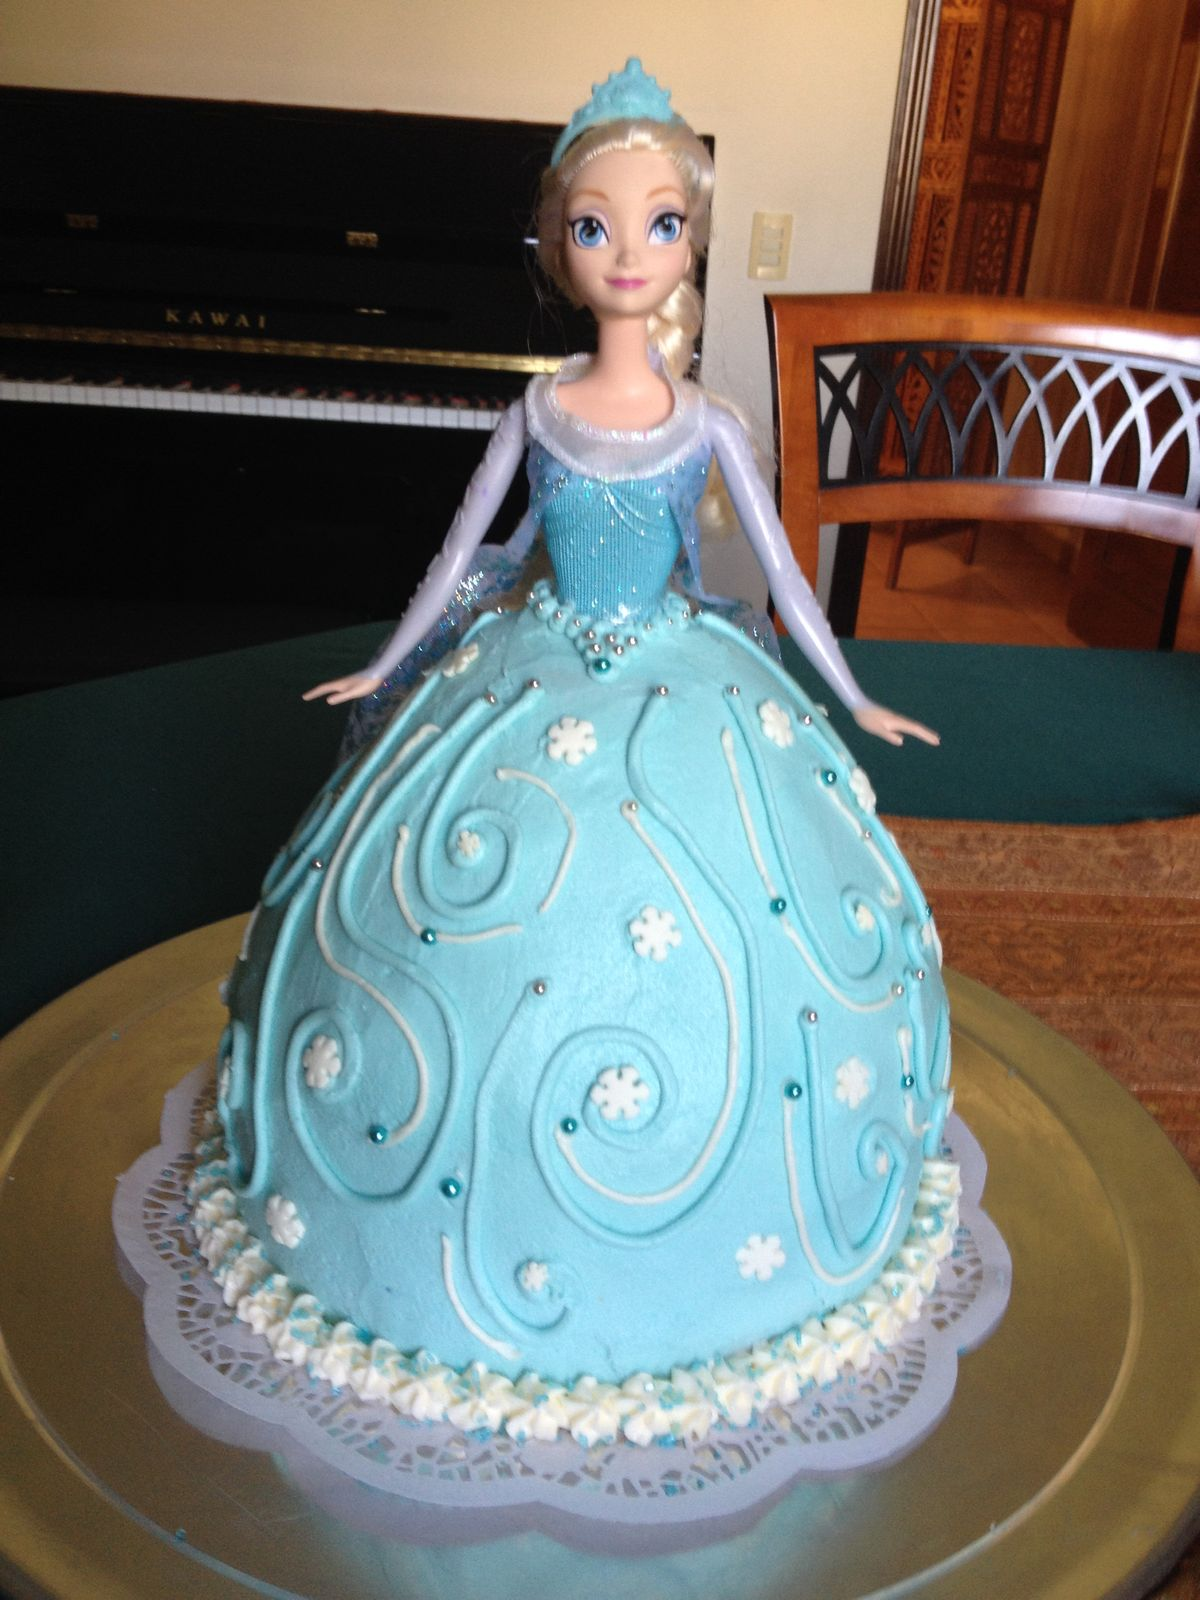 Disney Frozen Elsa Cake! This and an Anna doll cake is